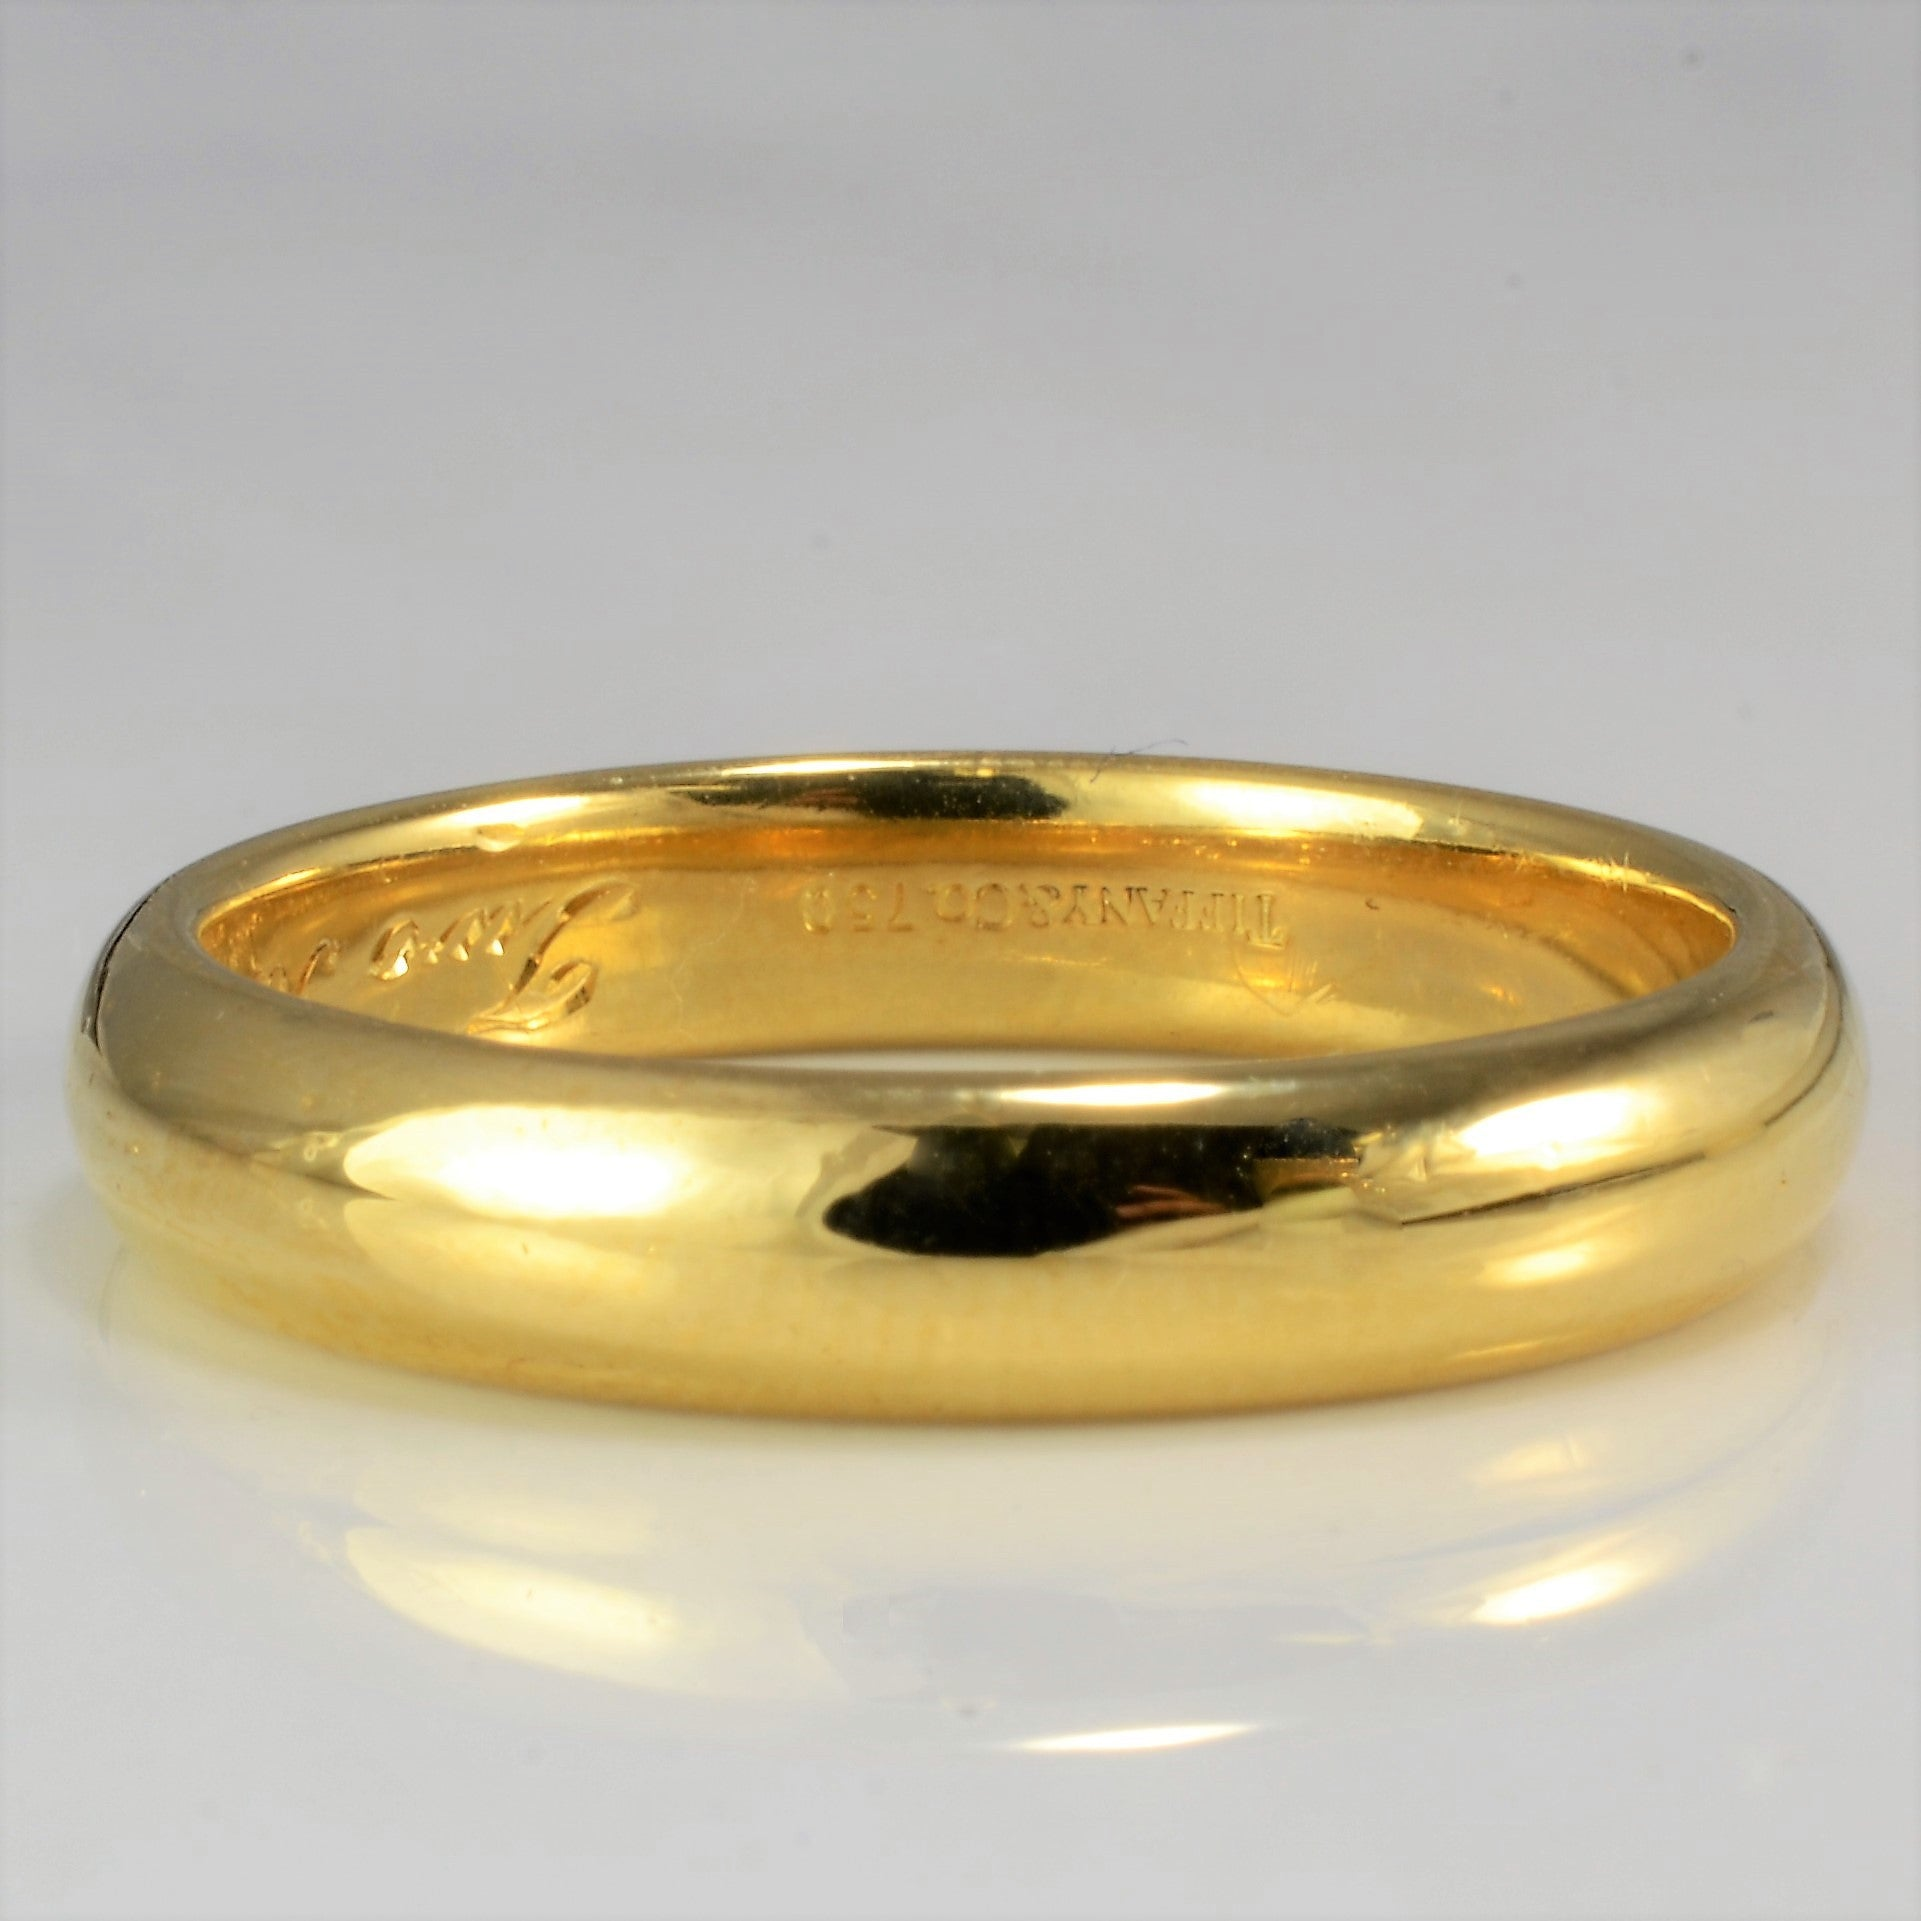 Tiffany & Co. Yellow Gold Wedding Band | SZ 10.25 |